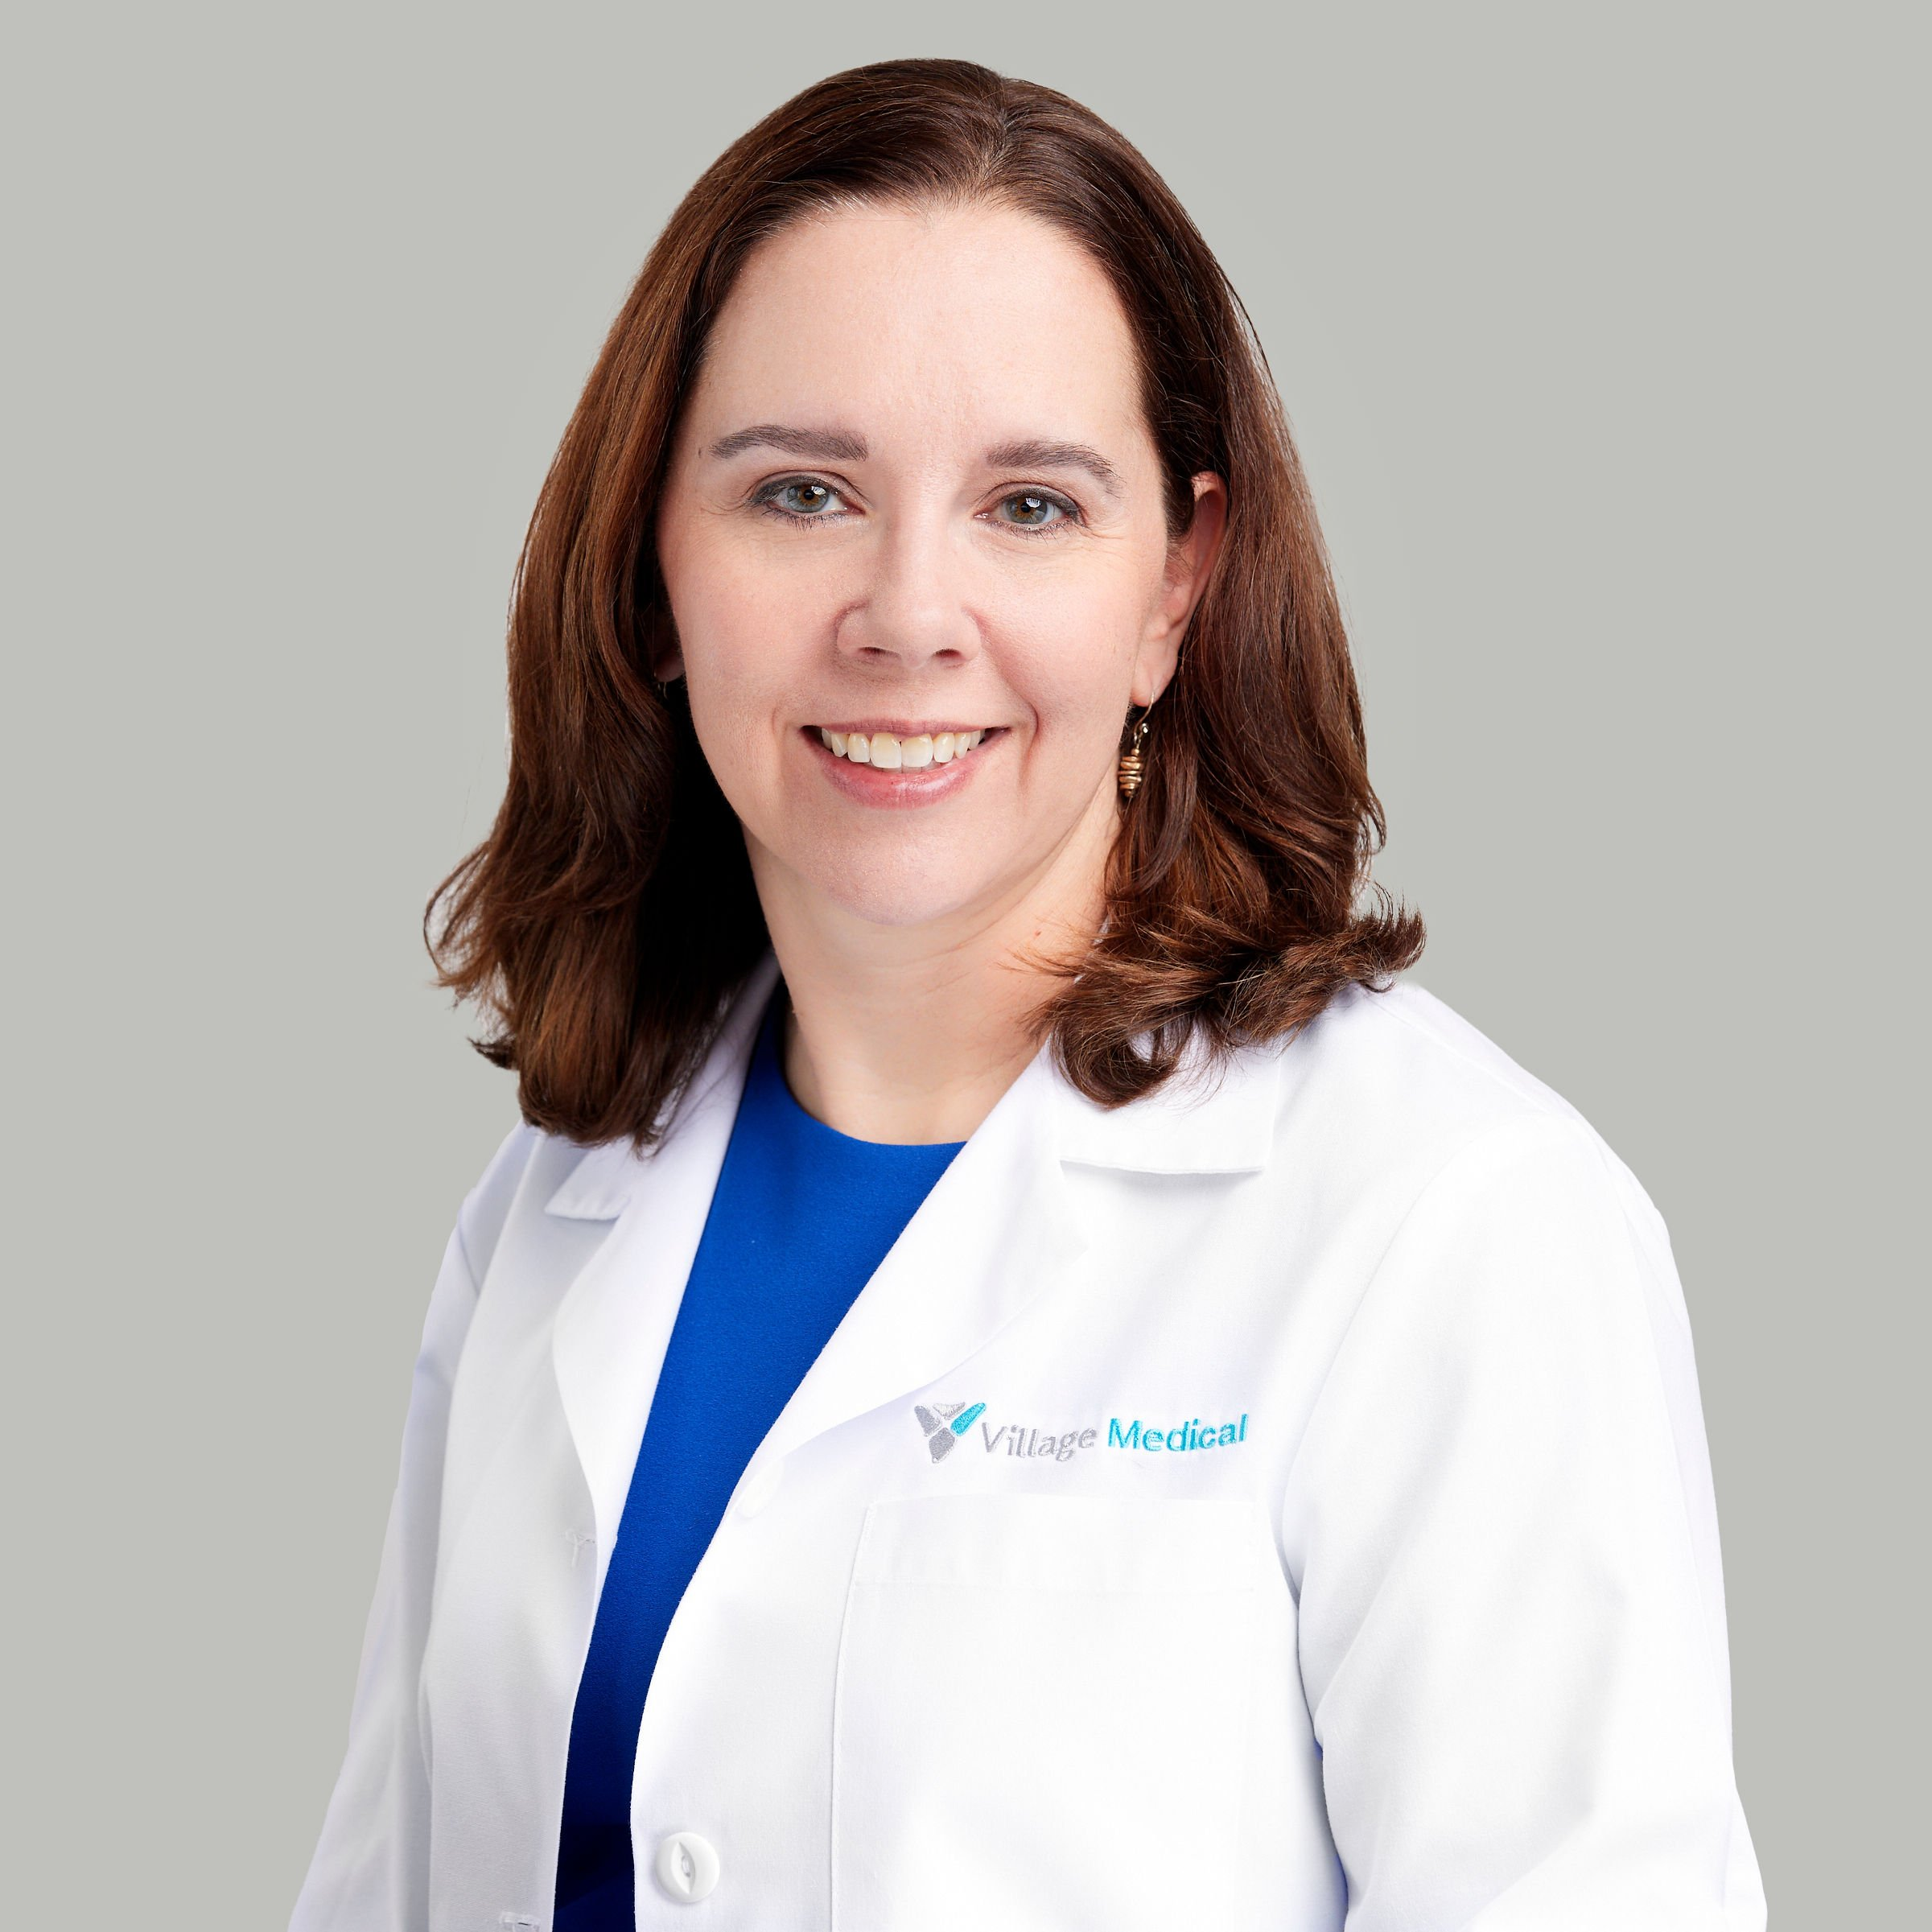 Jackie Snell, MD